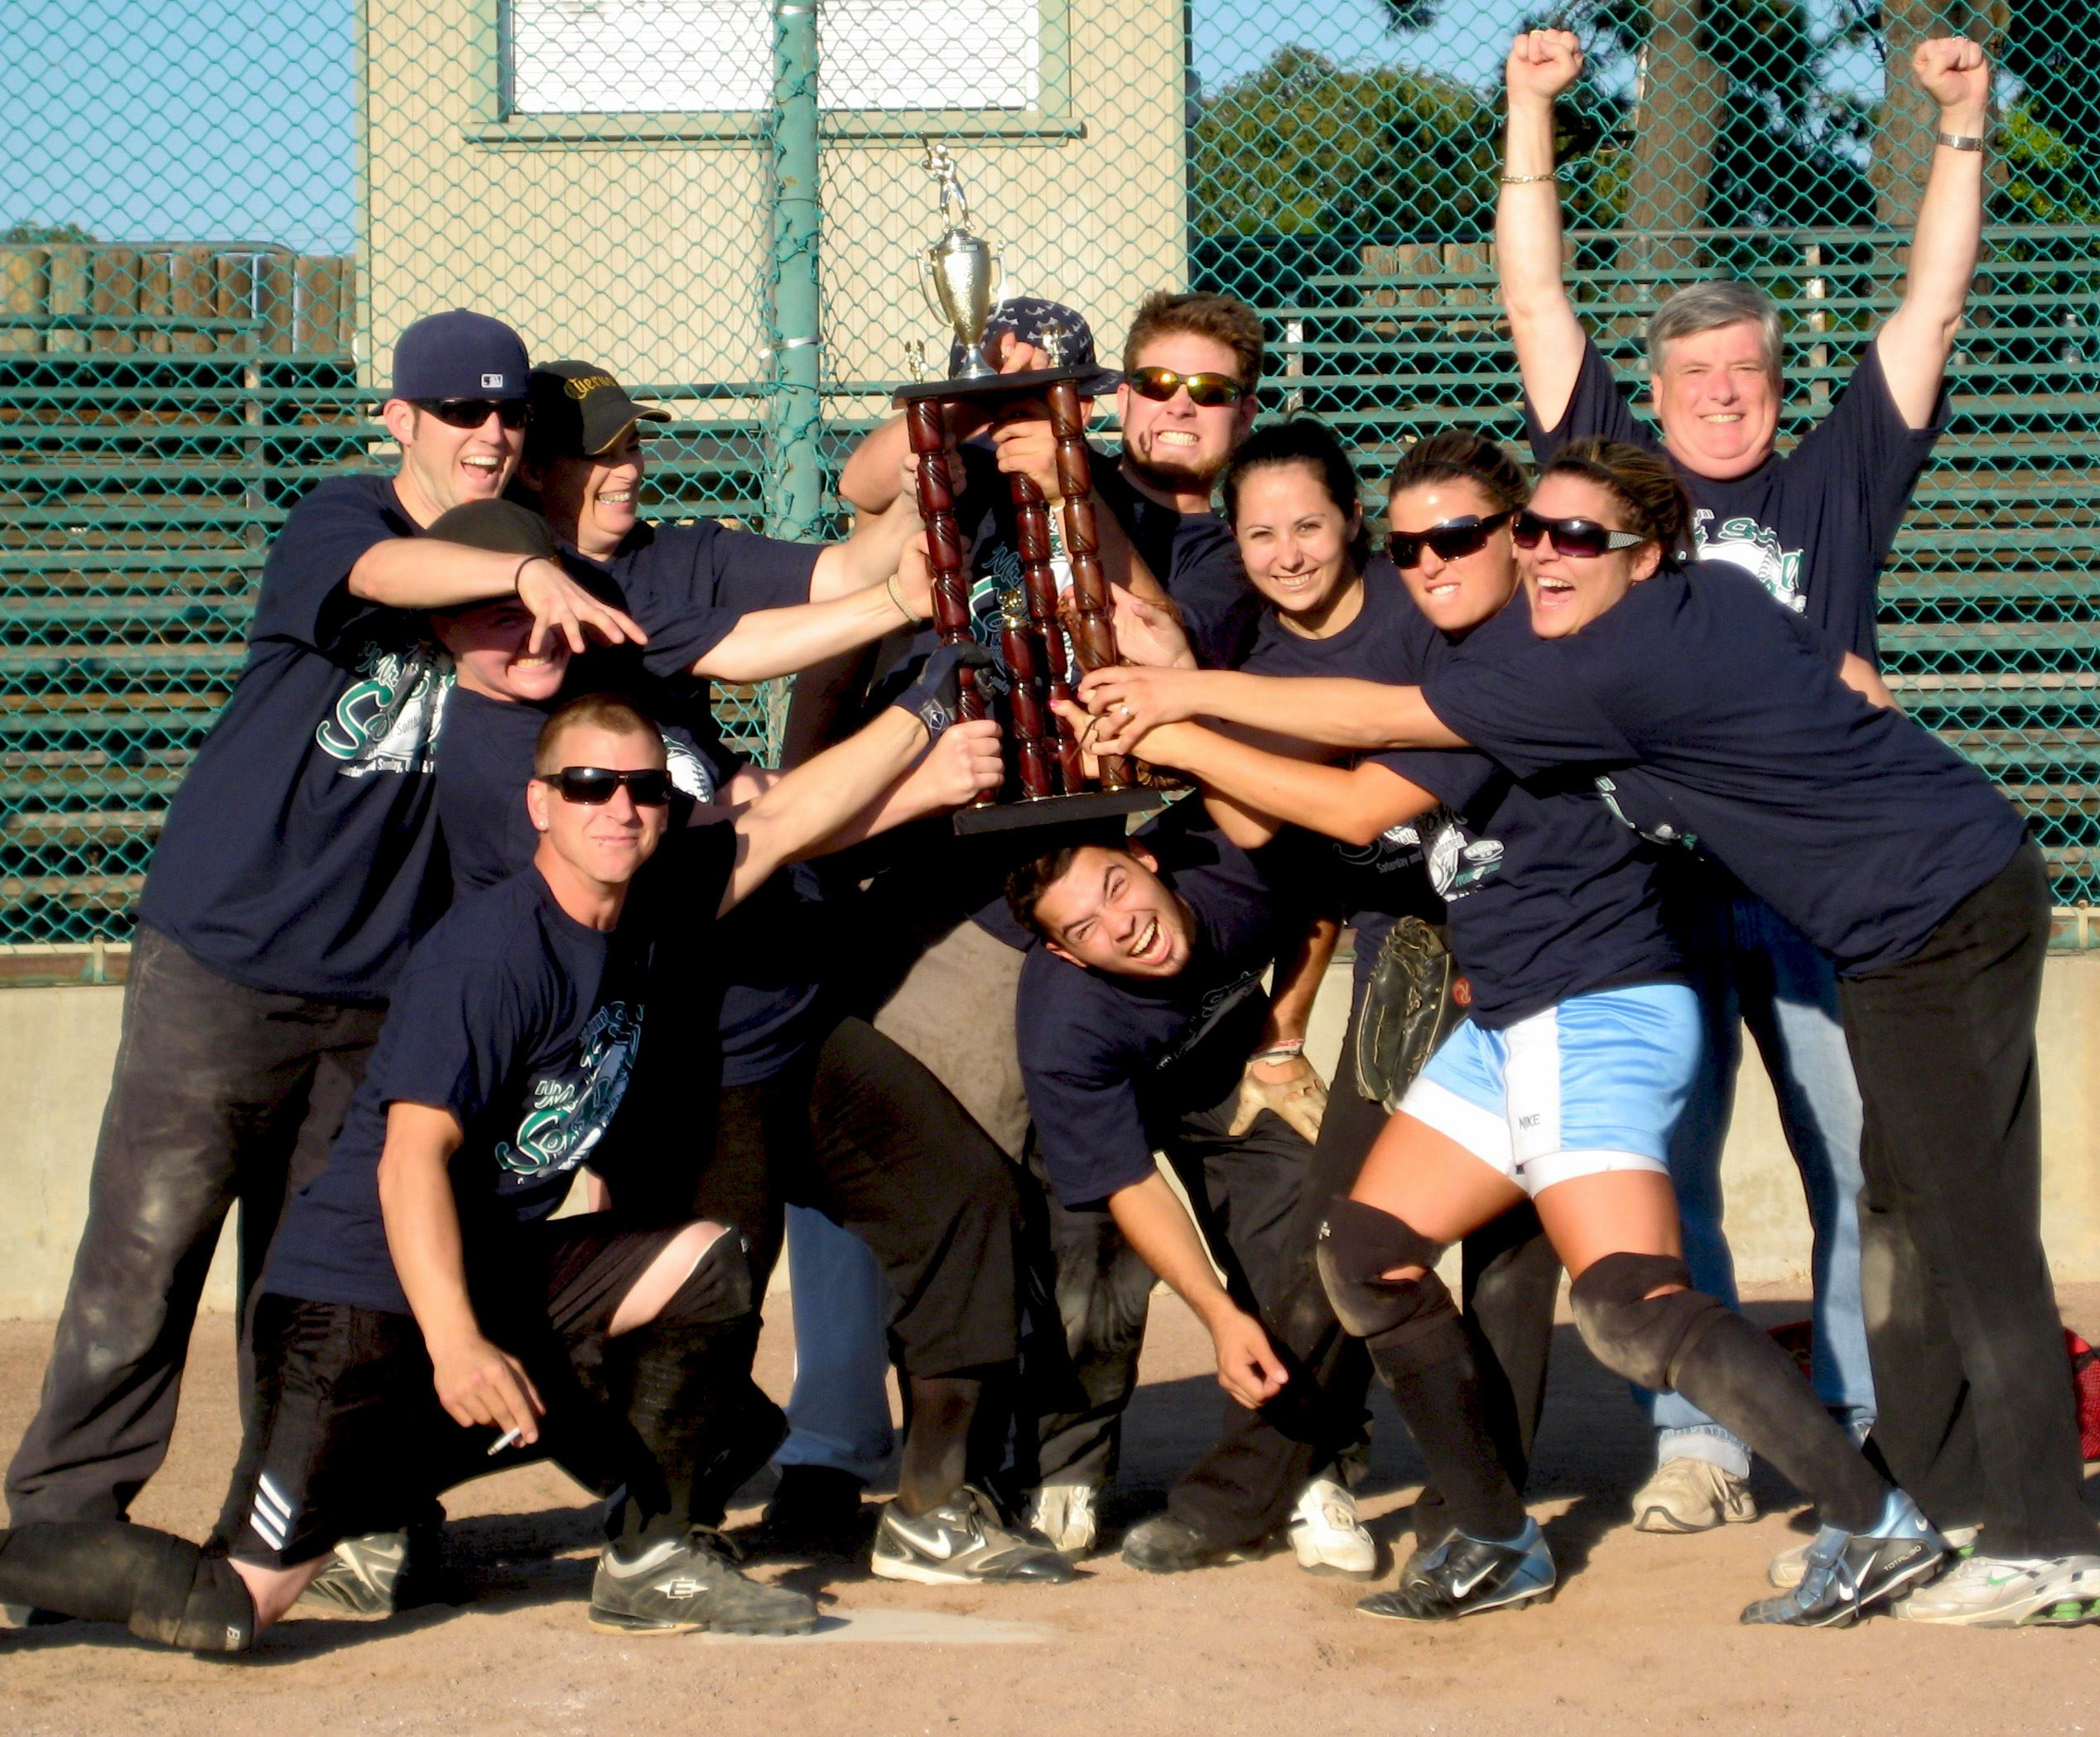 Co-ed softball team posing with trophy